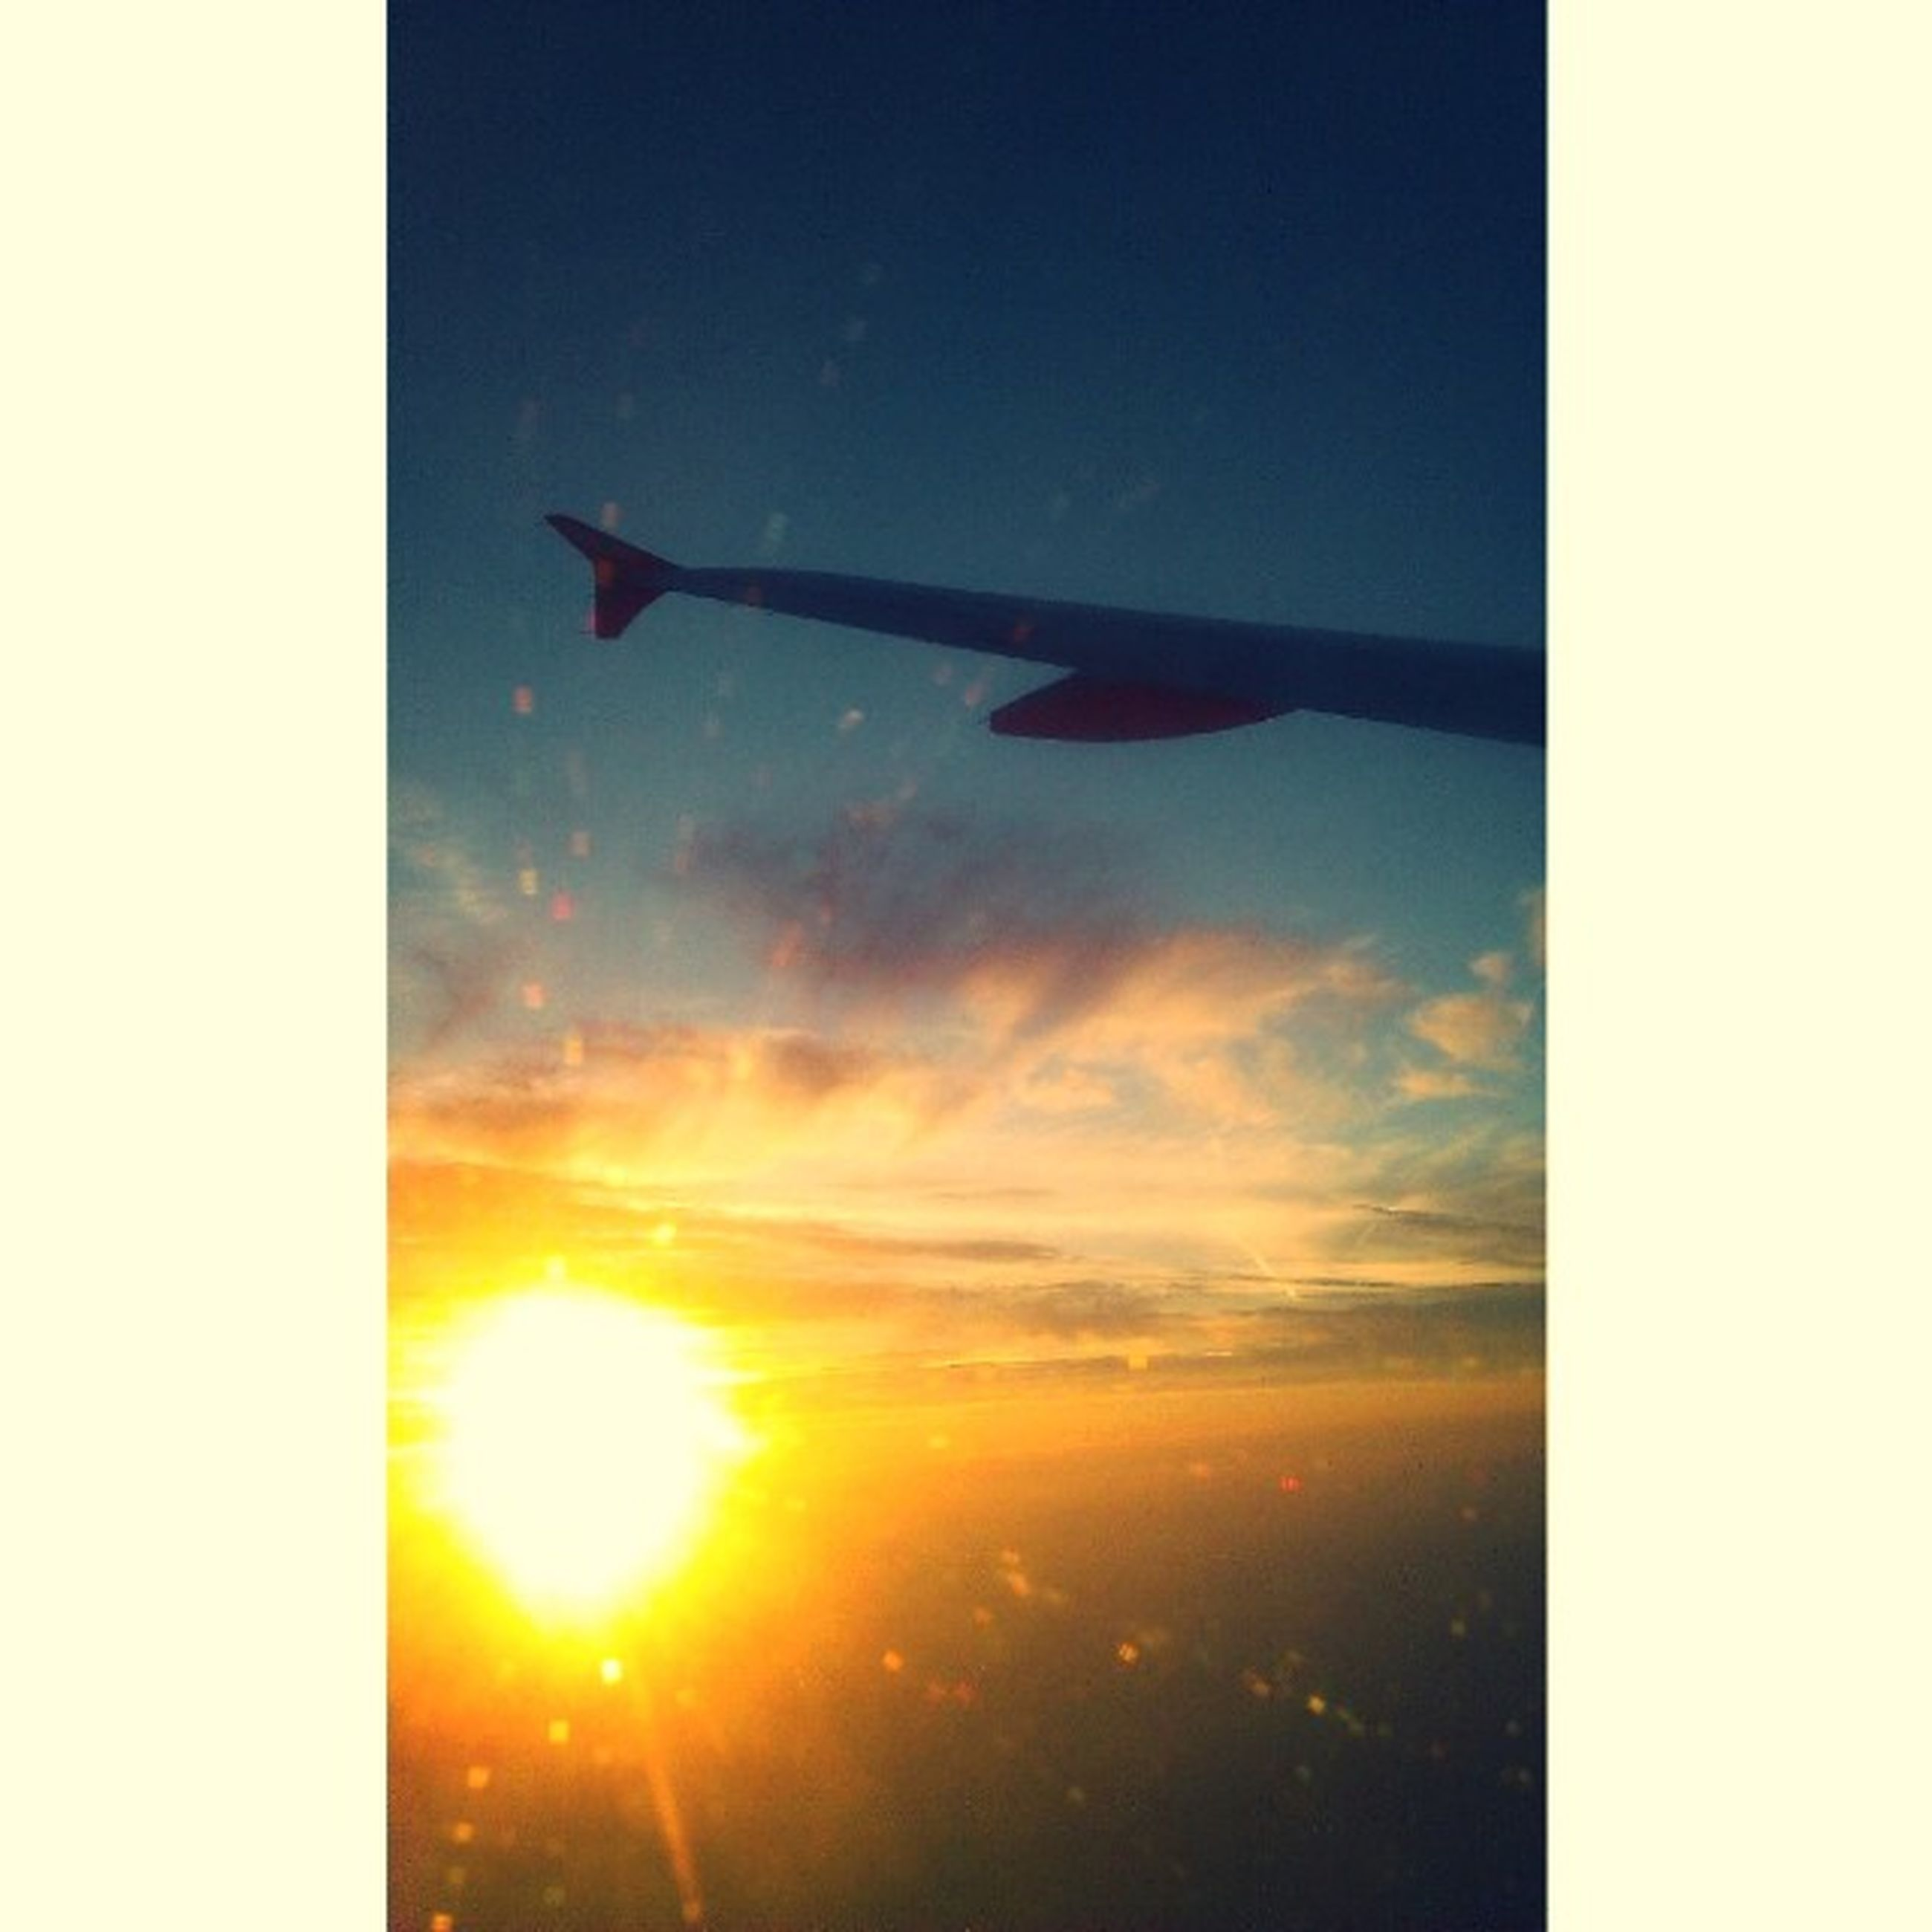 sunset, airplane, flying, sun, transportation, air vehicle, mode of transport, sky, aircraft wing, scenics, travel, beauty in nature, cloud - sky, orange color, mid-air, sunlight, nature, journey, on the move, tranquil scene